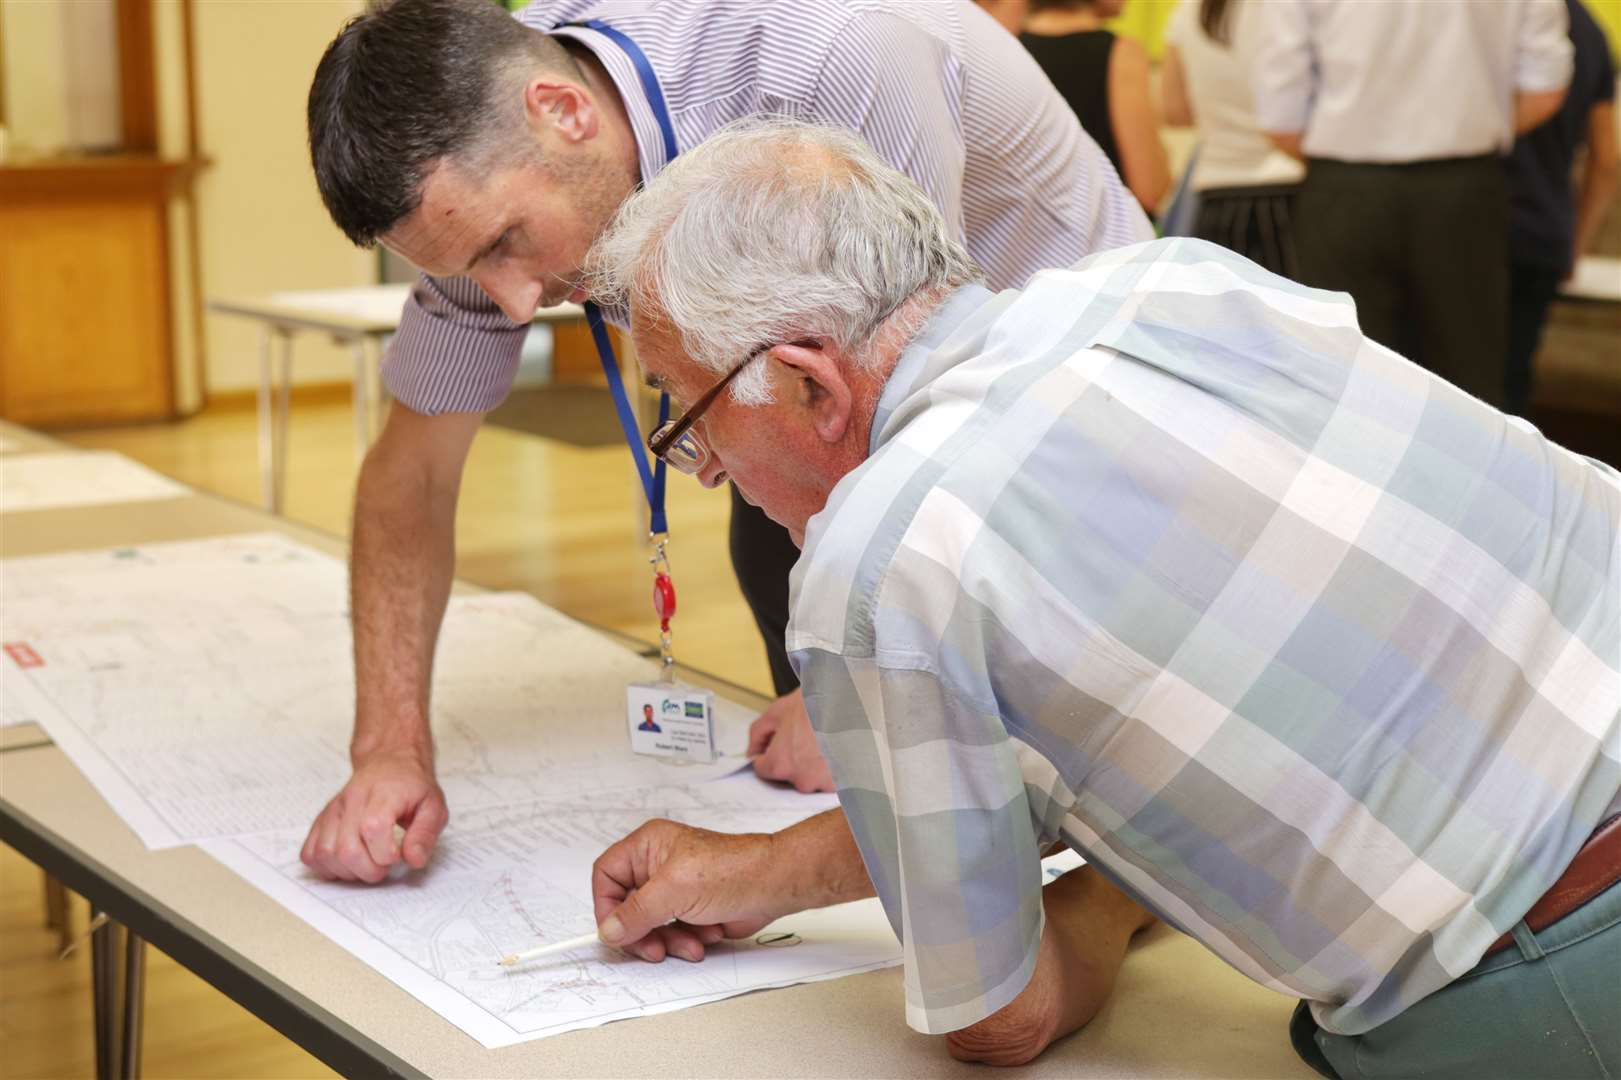 Farnsfield resident, George Rhodes talks with Robert Ward of Seven Trent Water during a public consultation event regarding a upgrade to road drainage in the area. 240719TV2-2. (14272092)